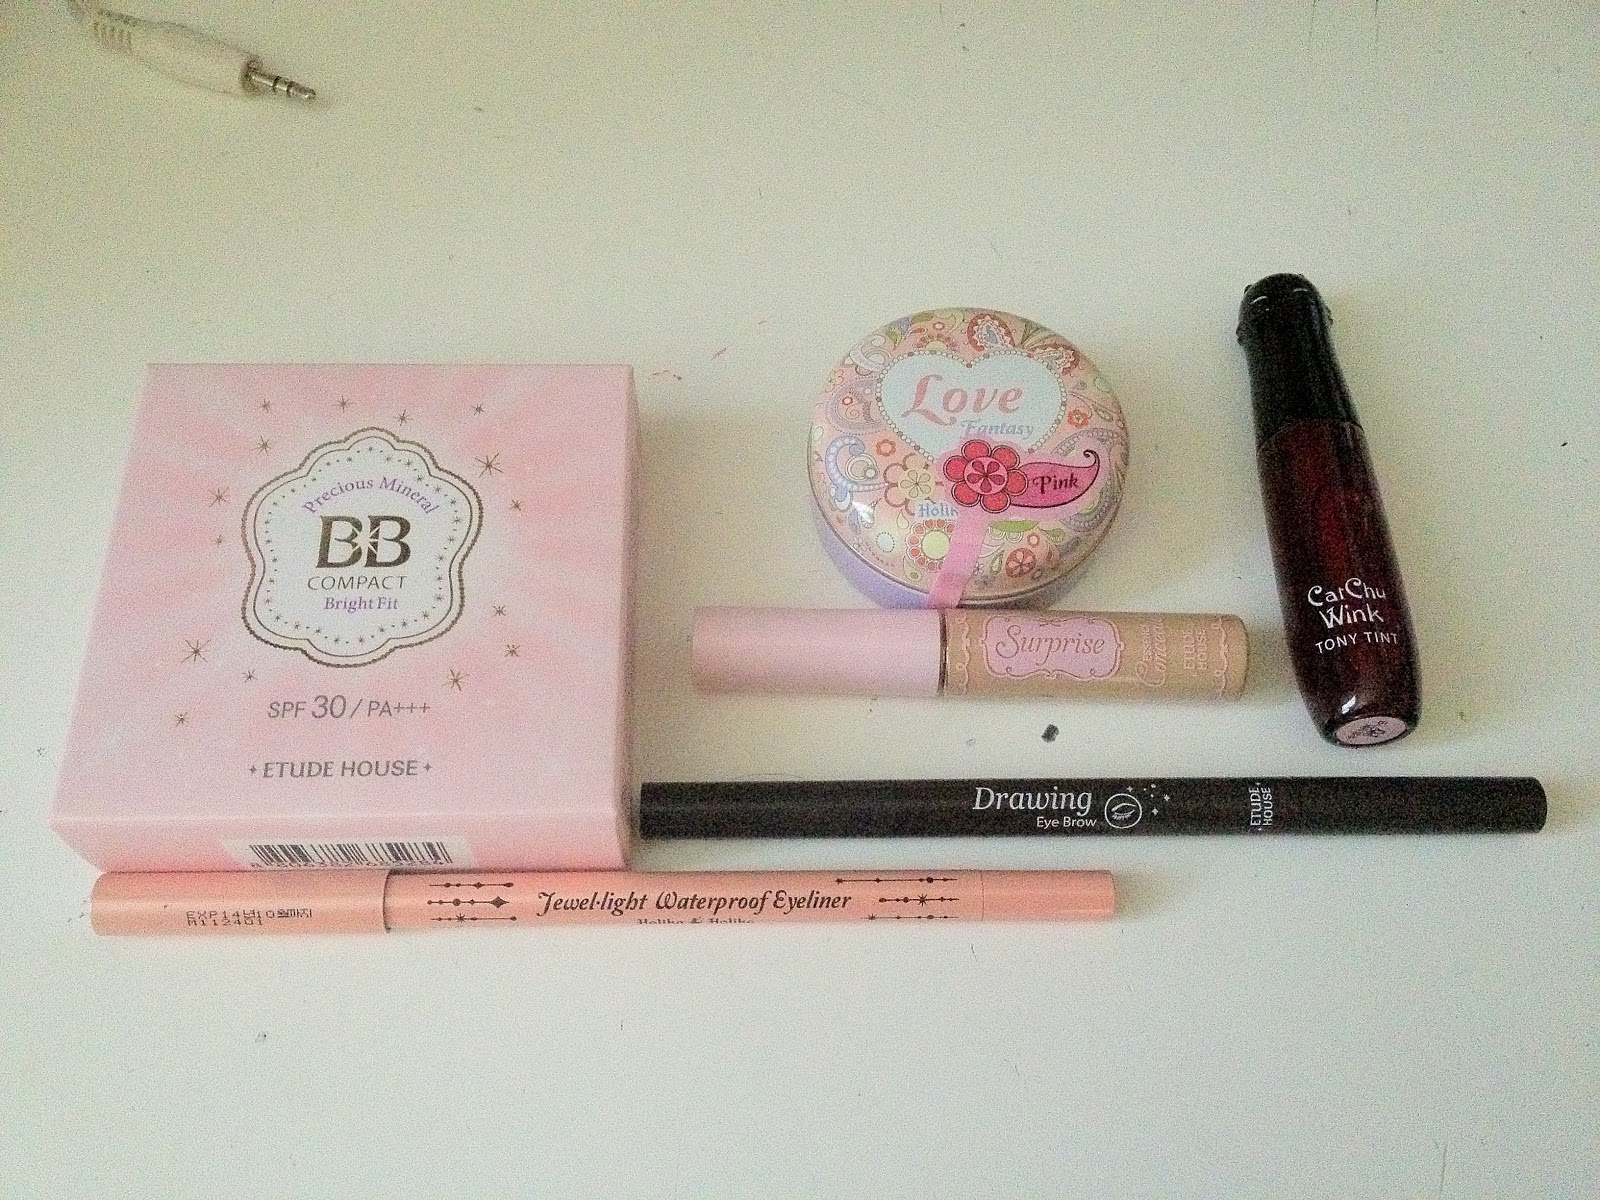 Free beauty samples by mail | beauty freebies online.